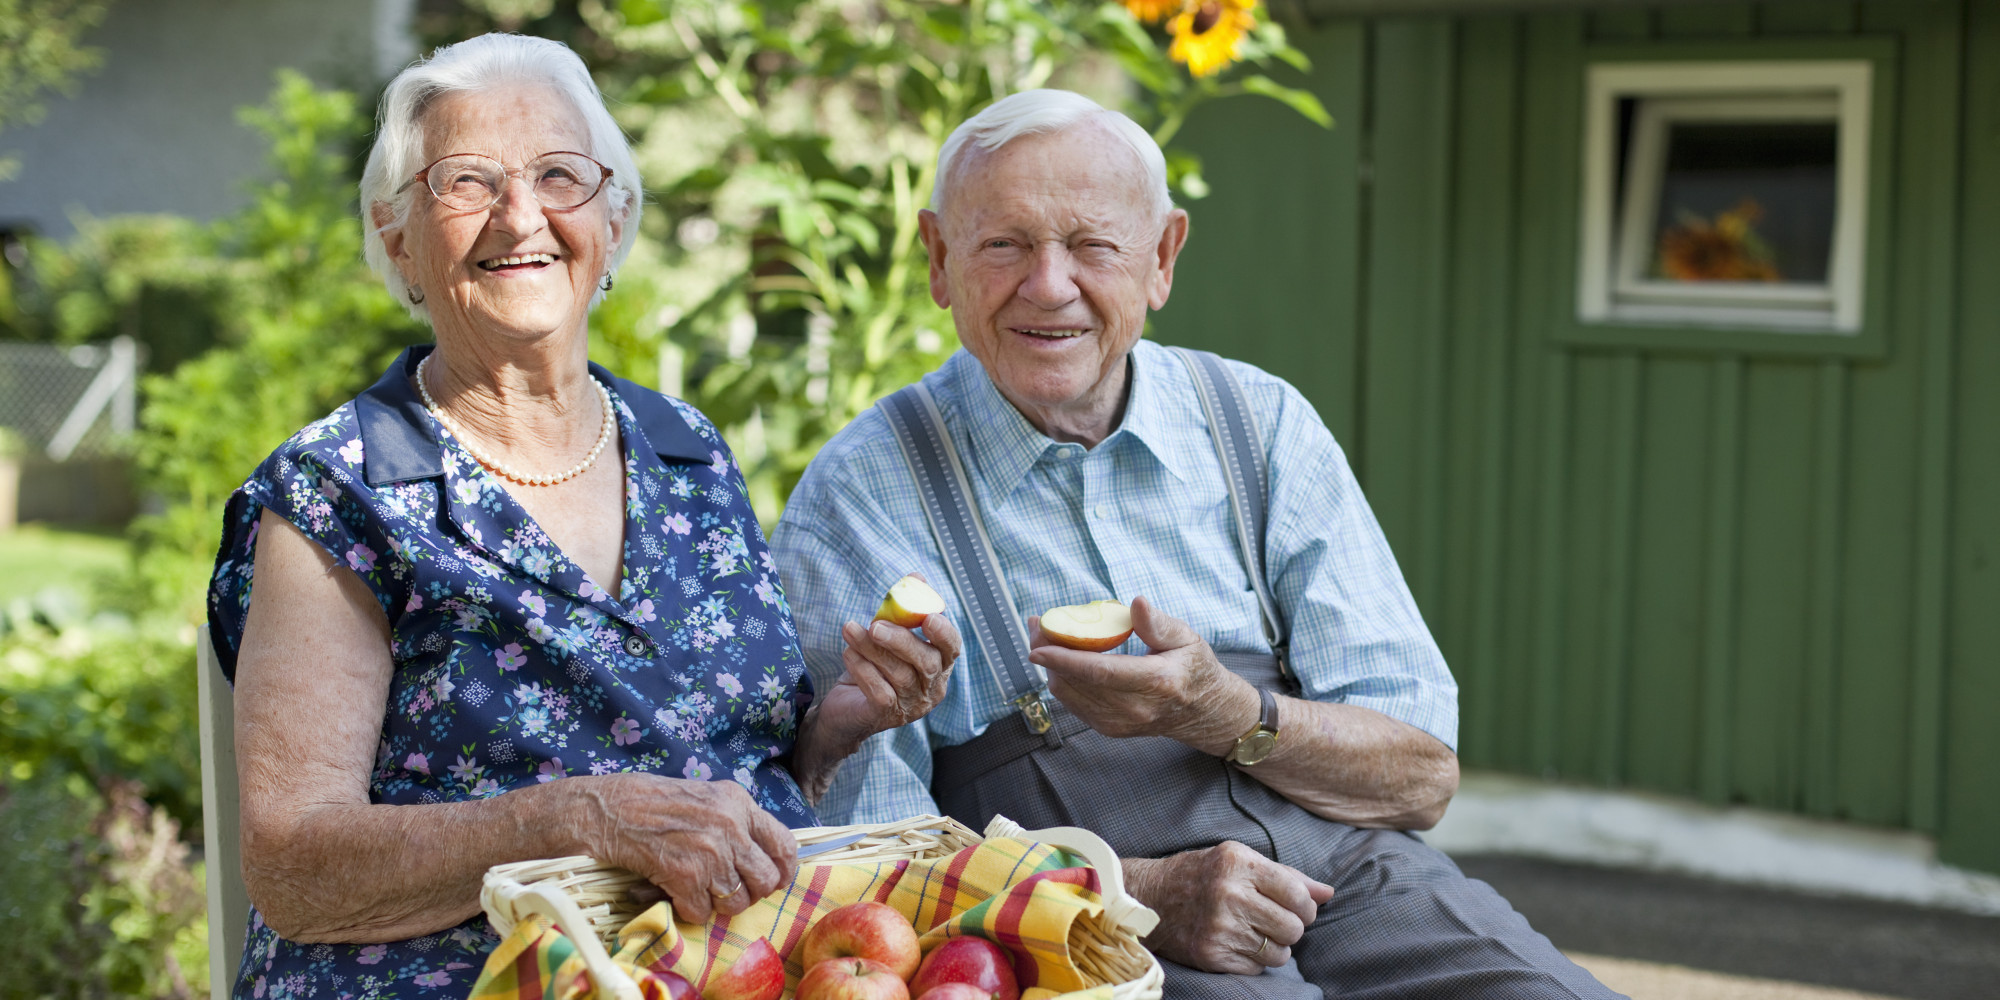 Healthy Eating Habits For Elderly: Important Points To Remember!